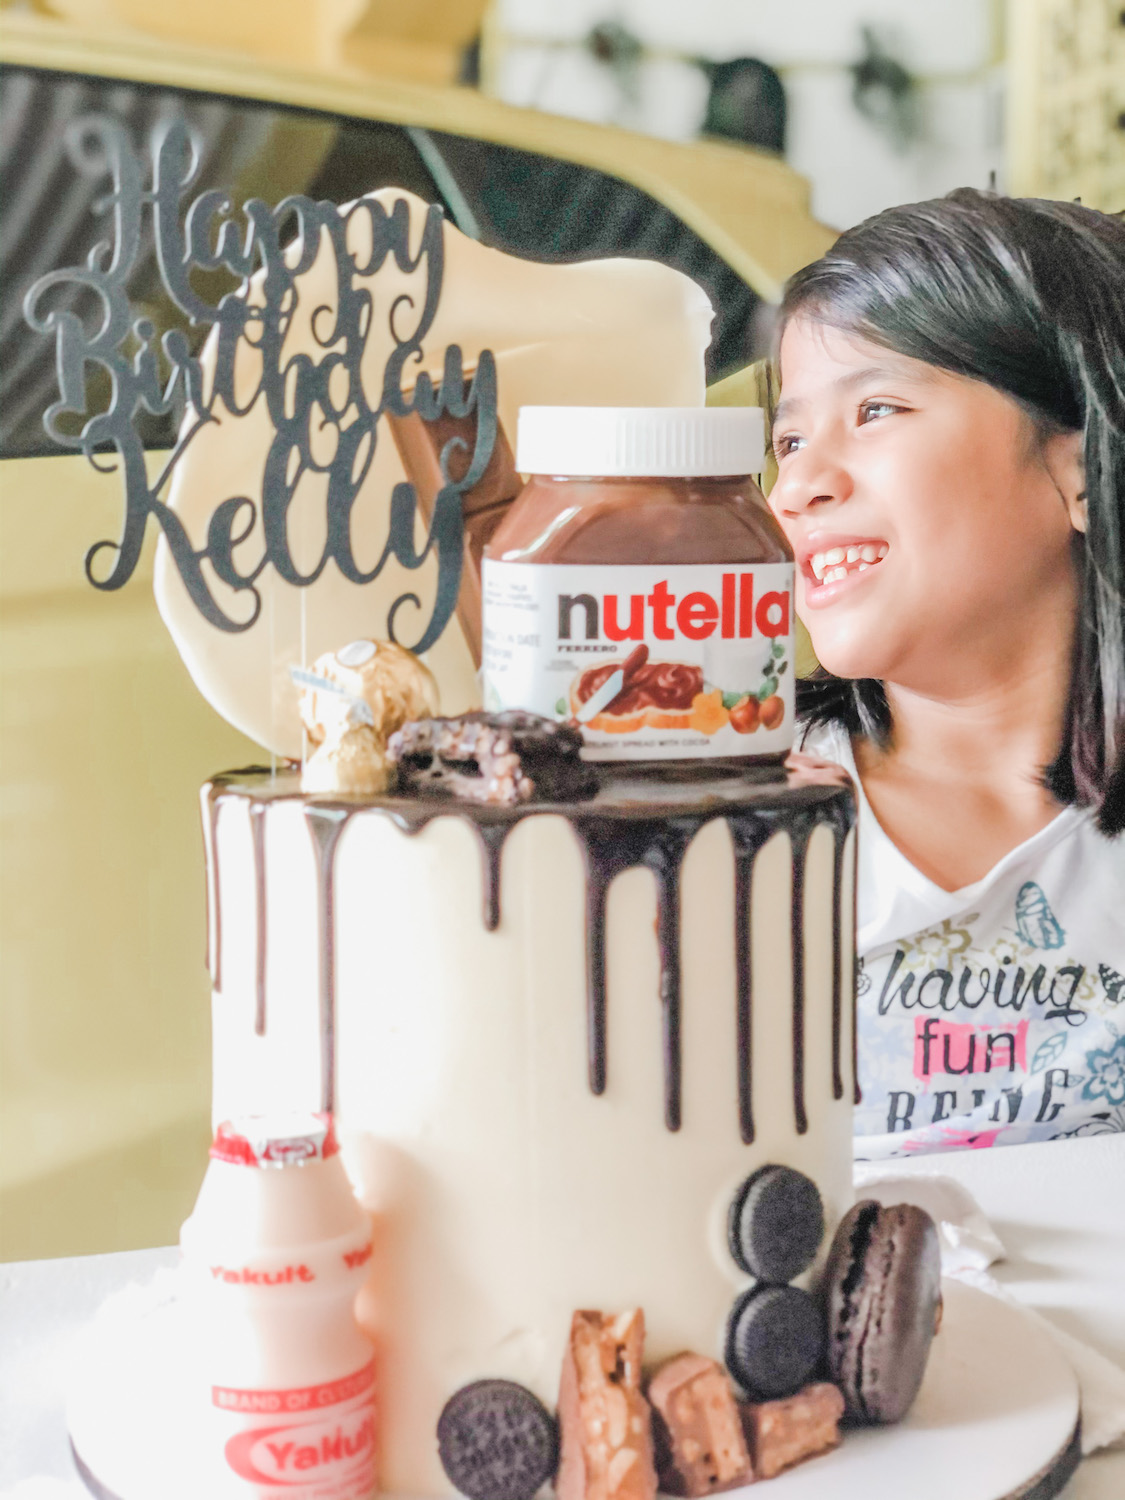 Kelly's 9th Birthday: Lasagna, Milk Tea, and Nutella Cake